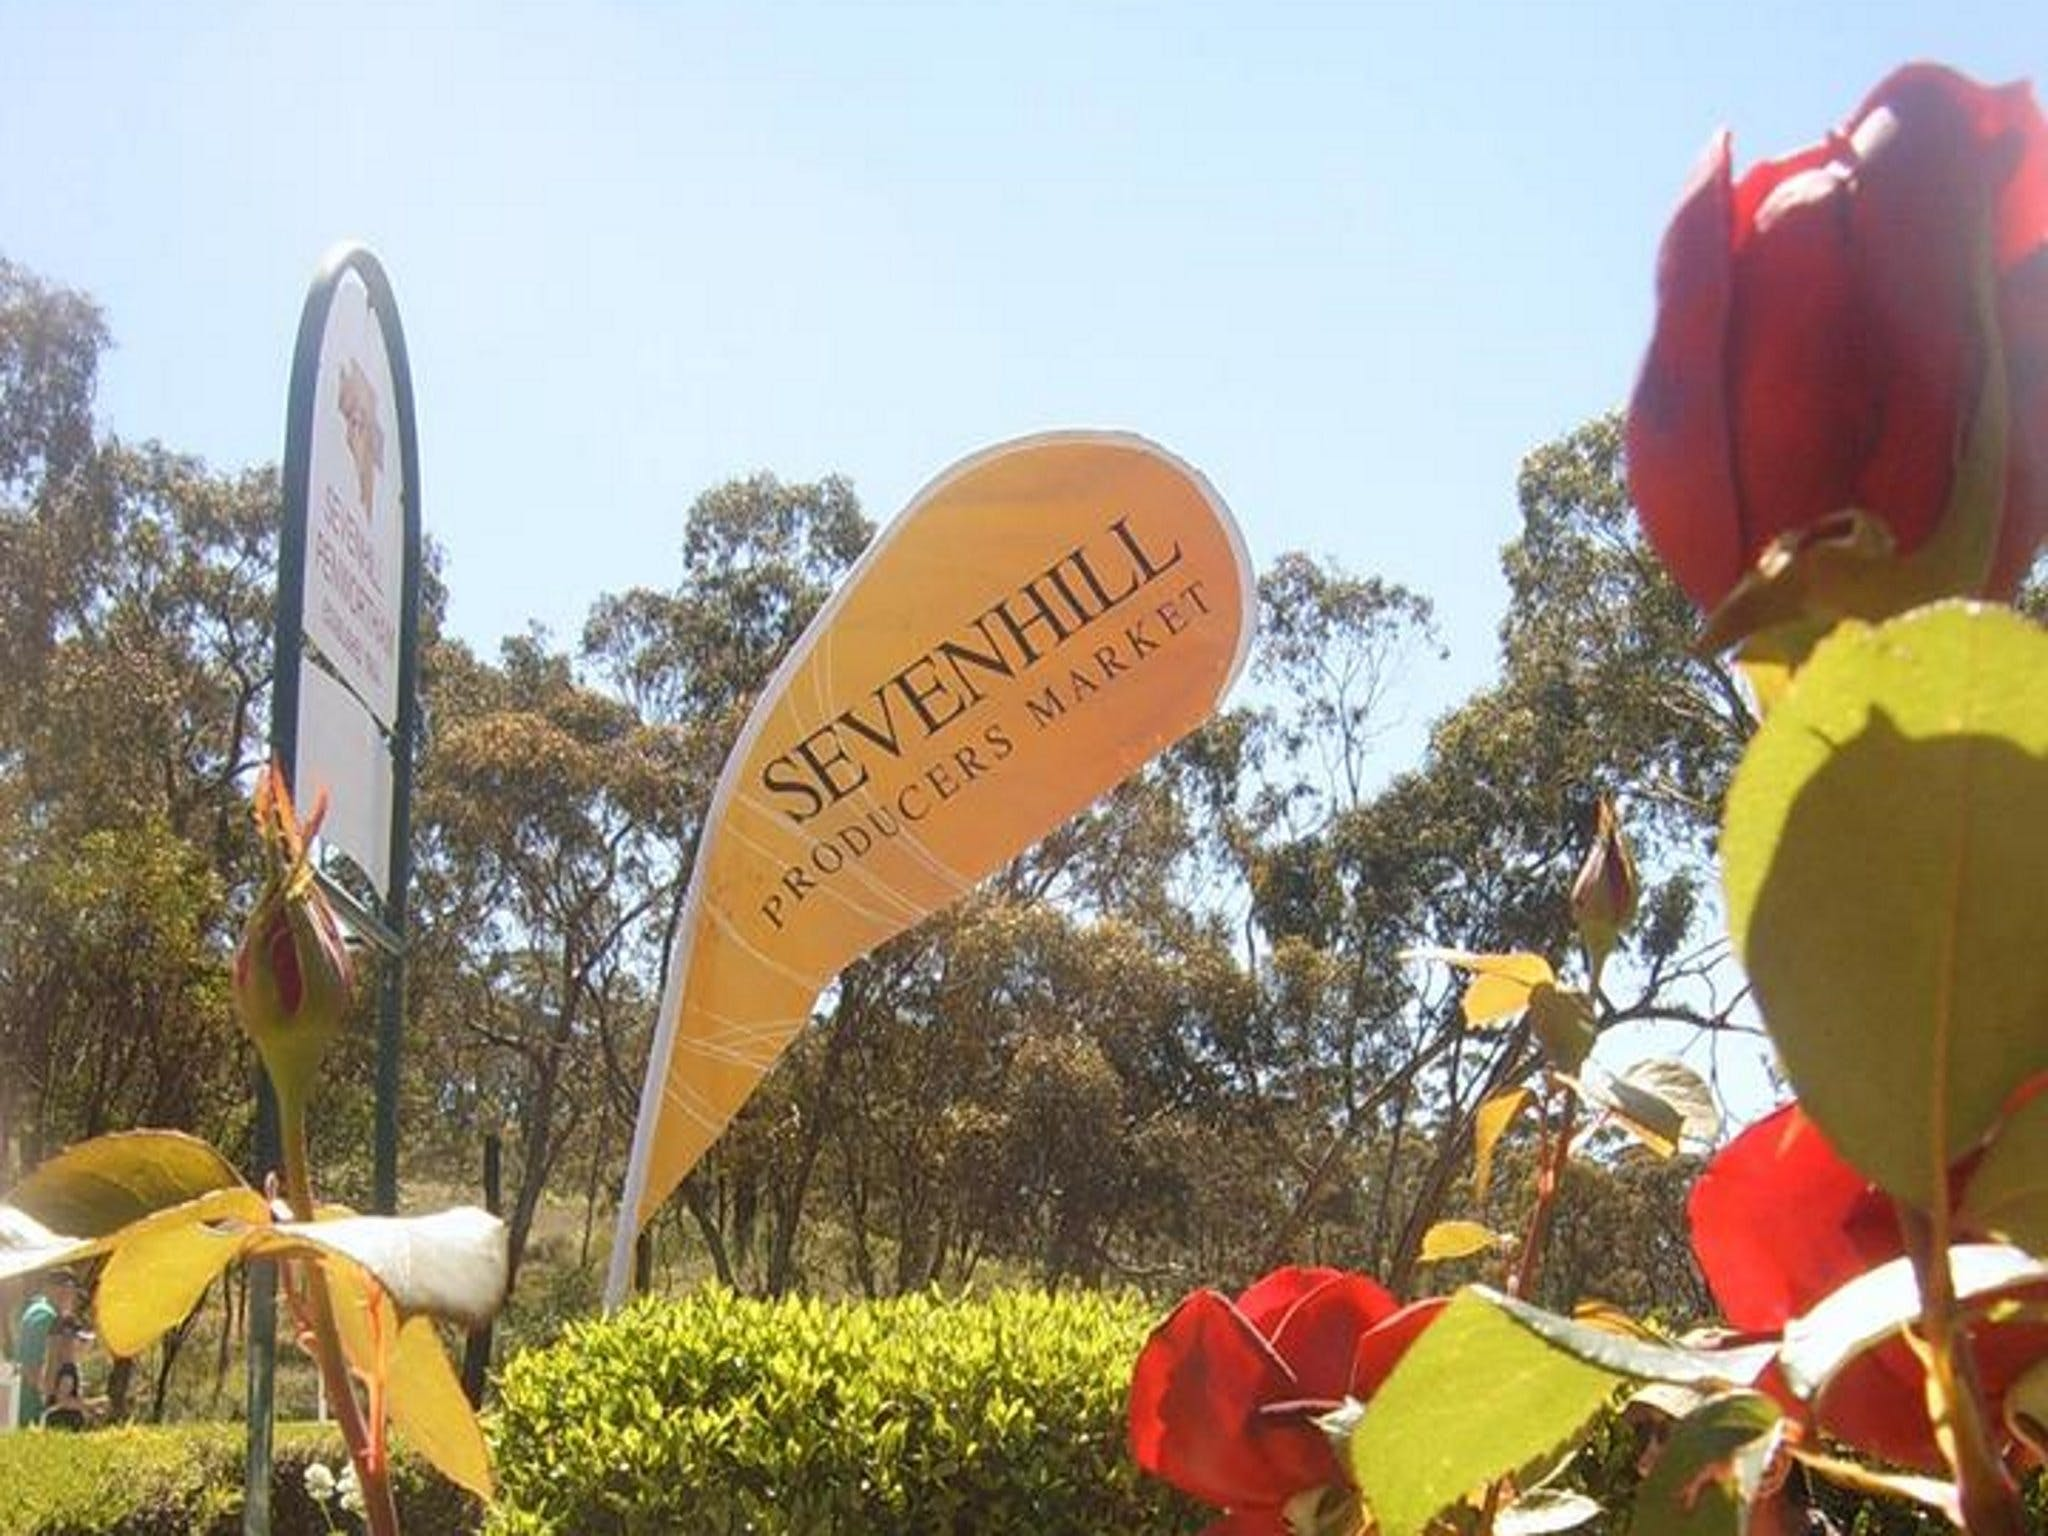 Sevenhill Producers Market - Accommodation Perth